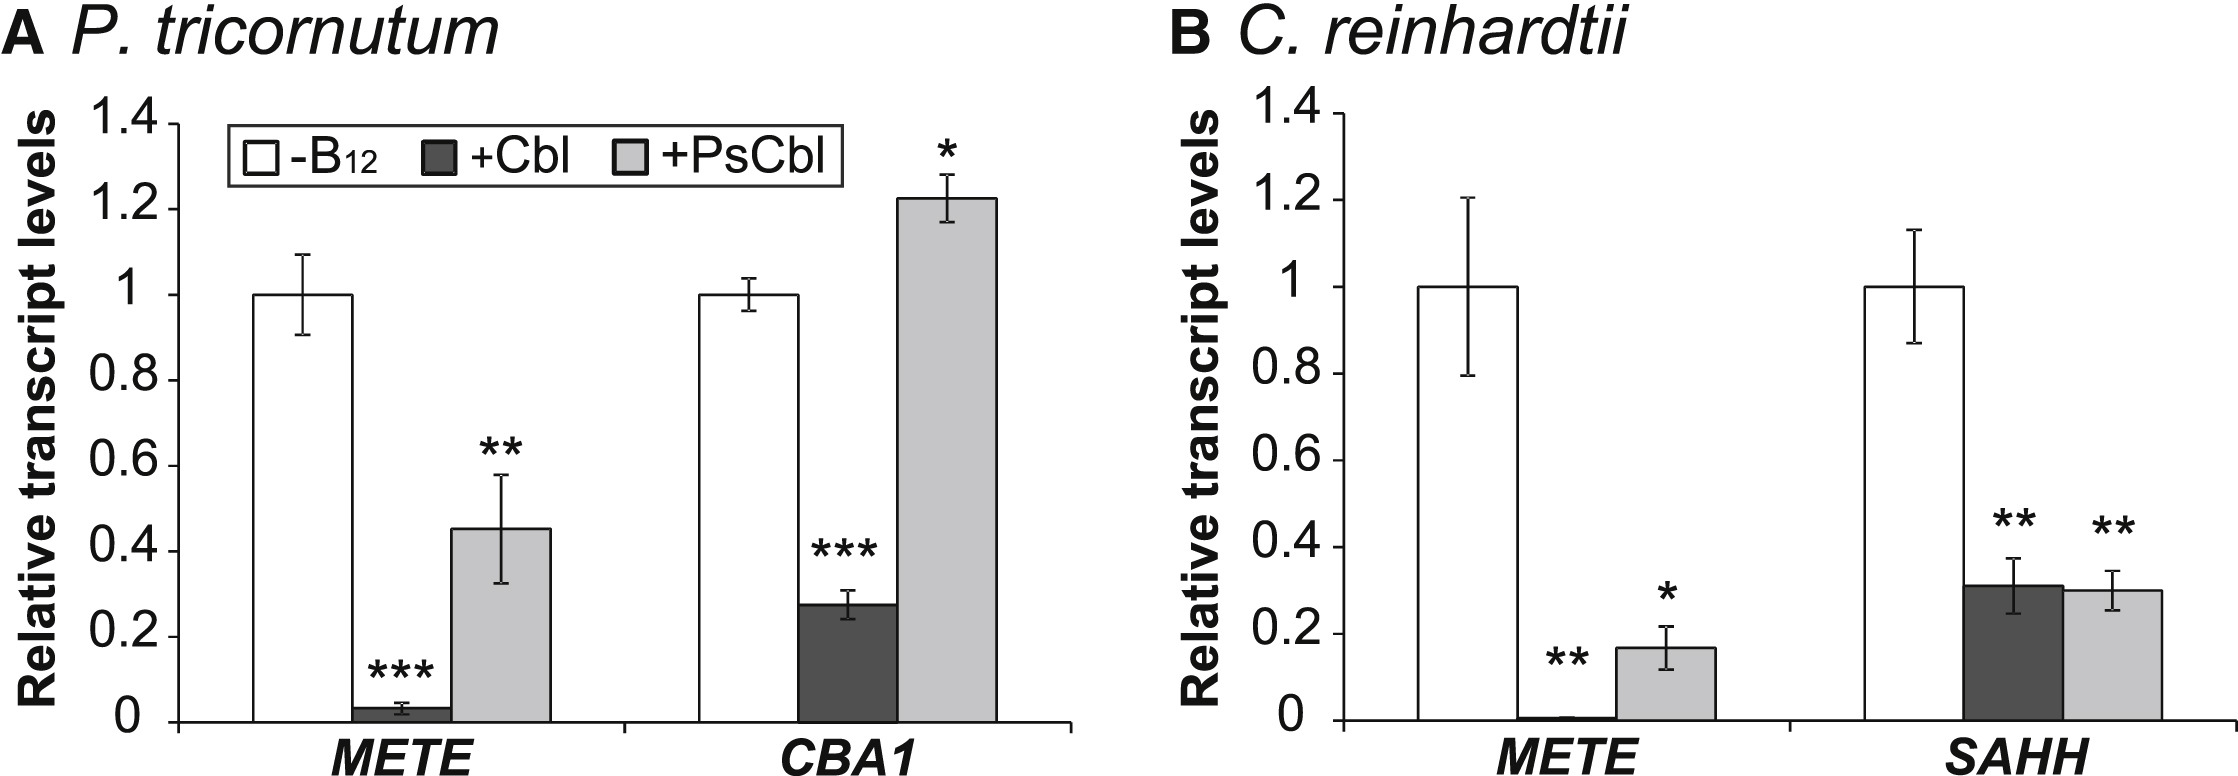 Cyanobacteria And Eukaryotic Algae Use Different Chemical Variants Of Vitamin B12 Current Biology